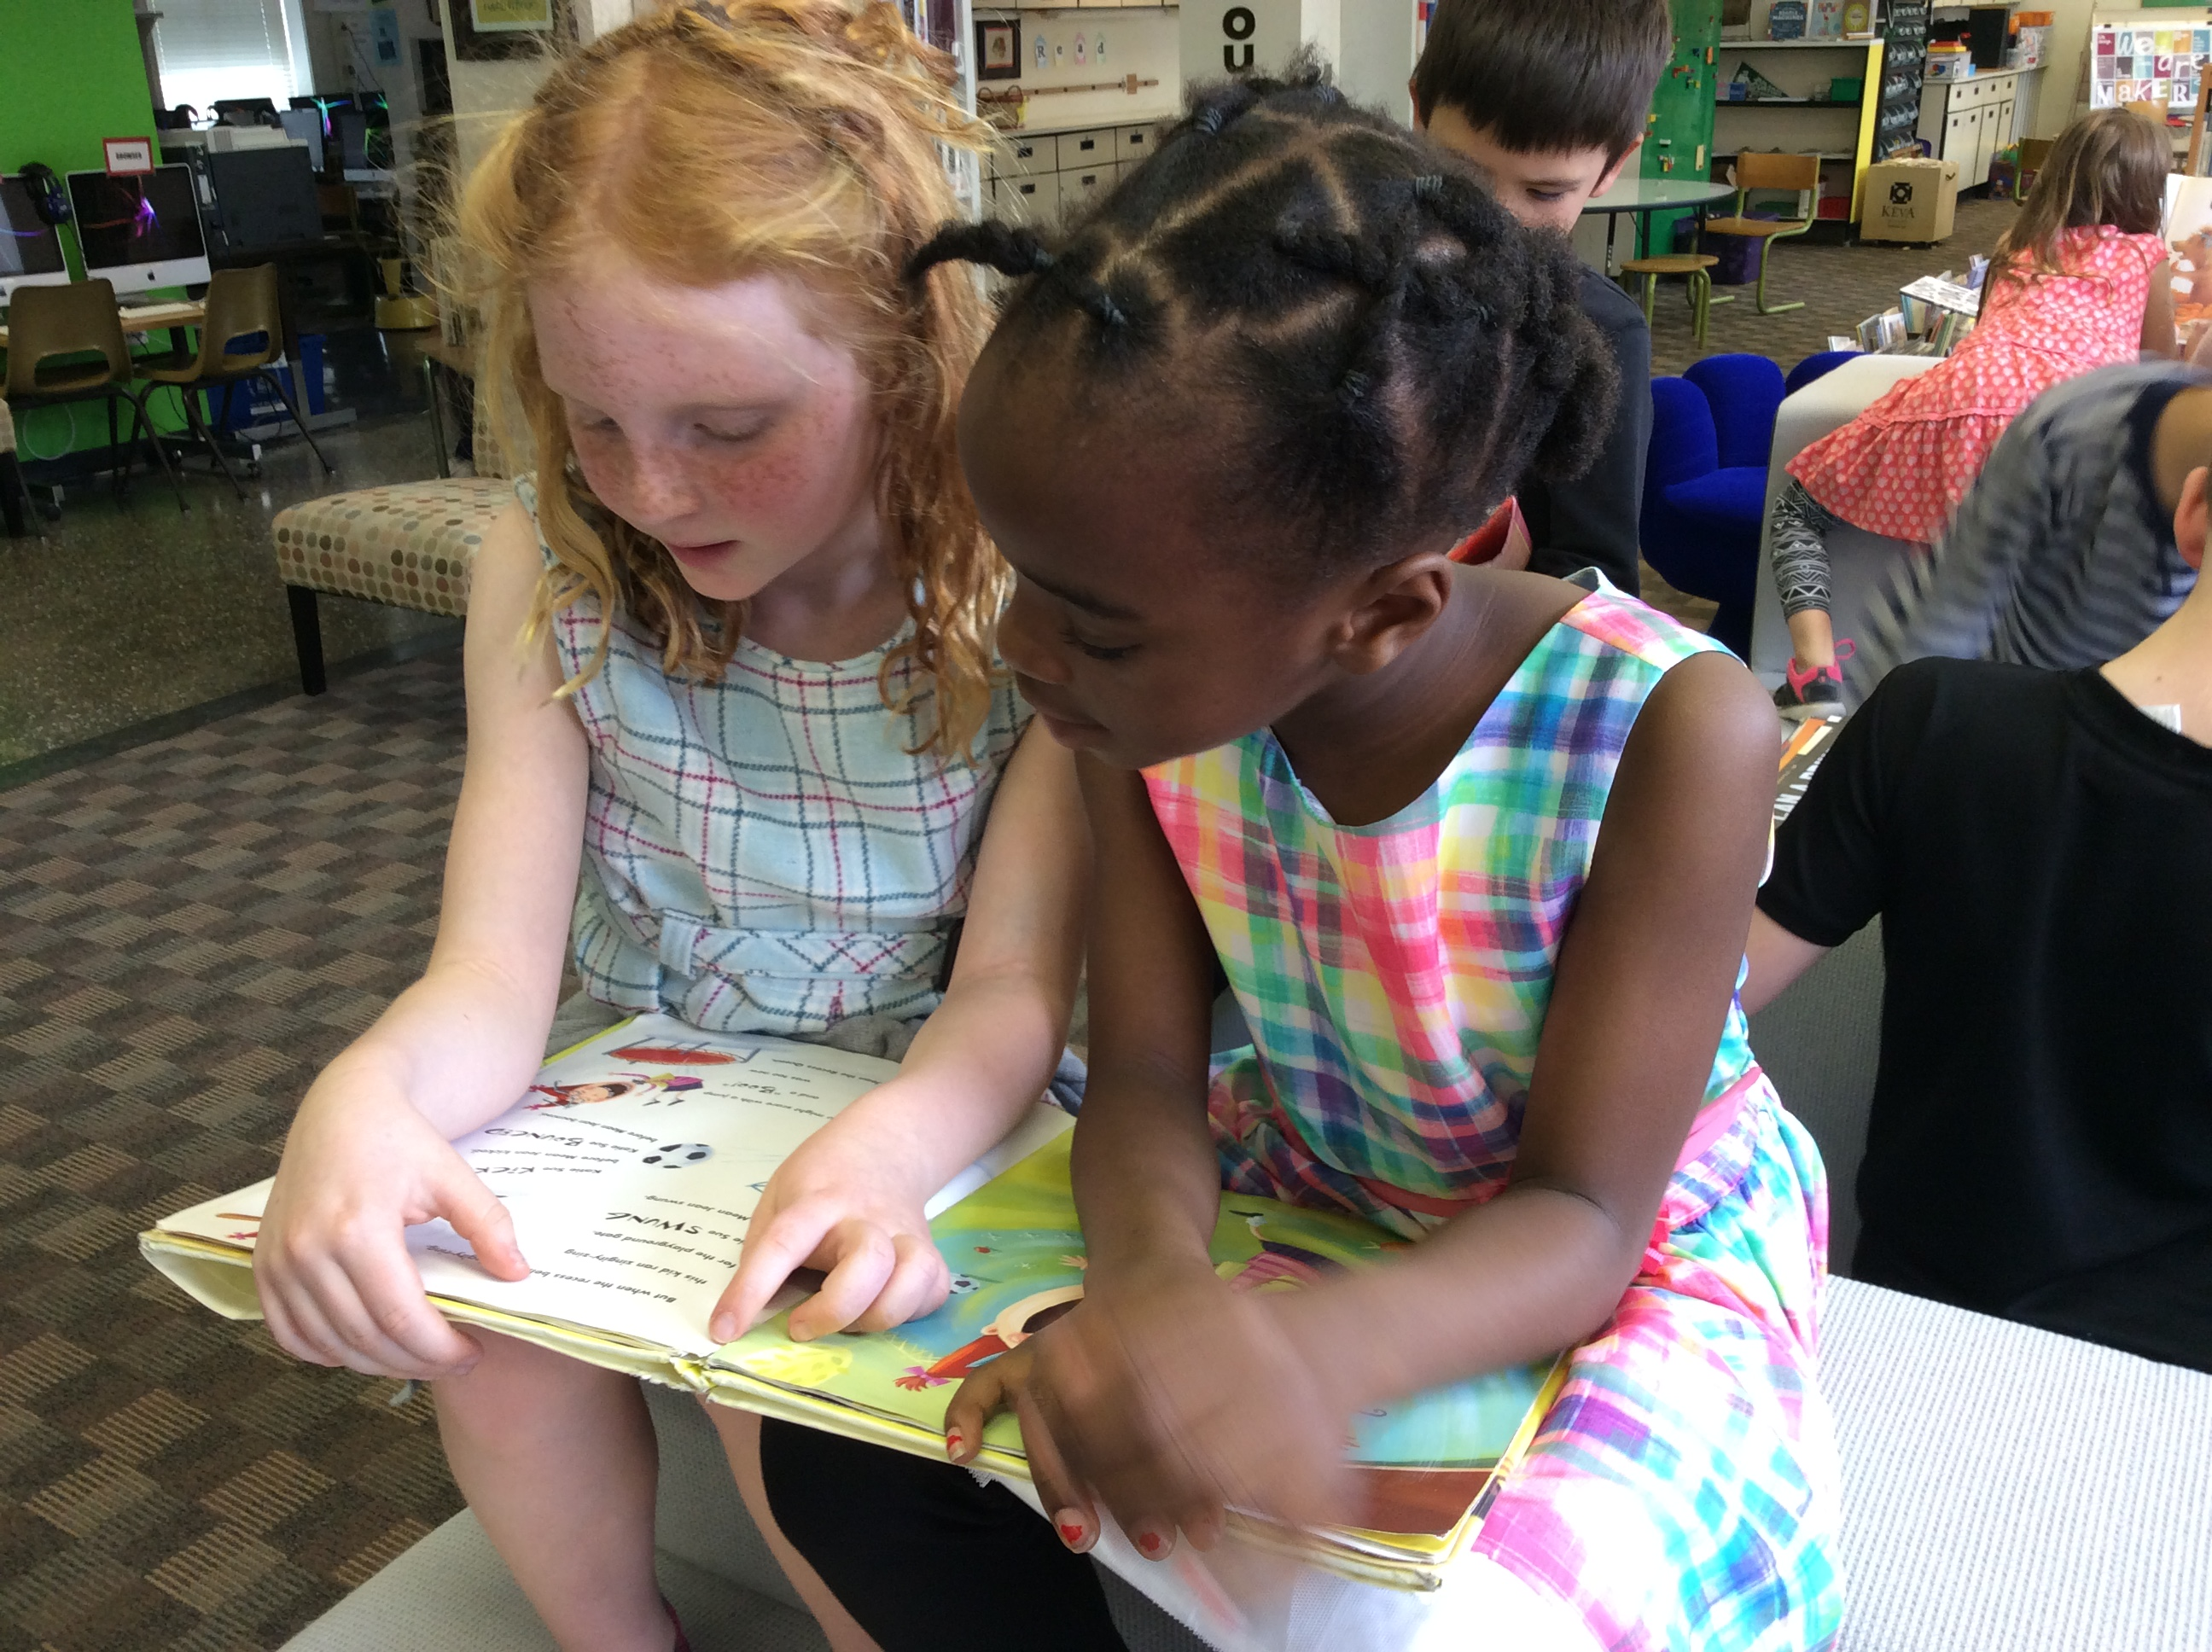 Photo of children reading together.